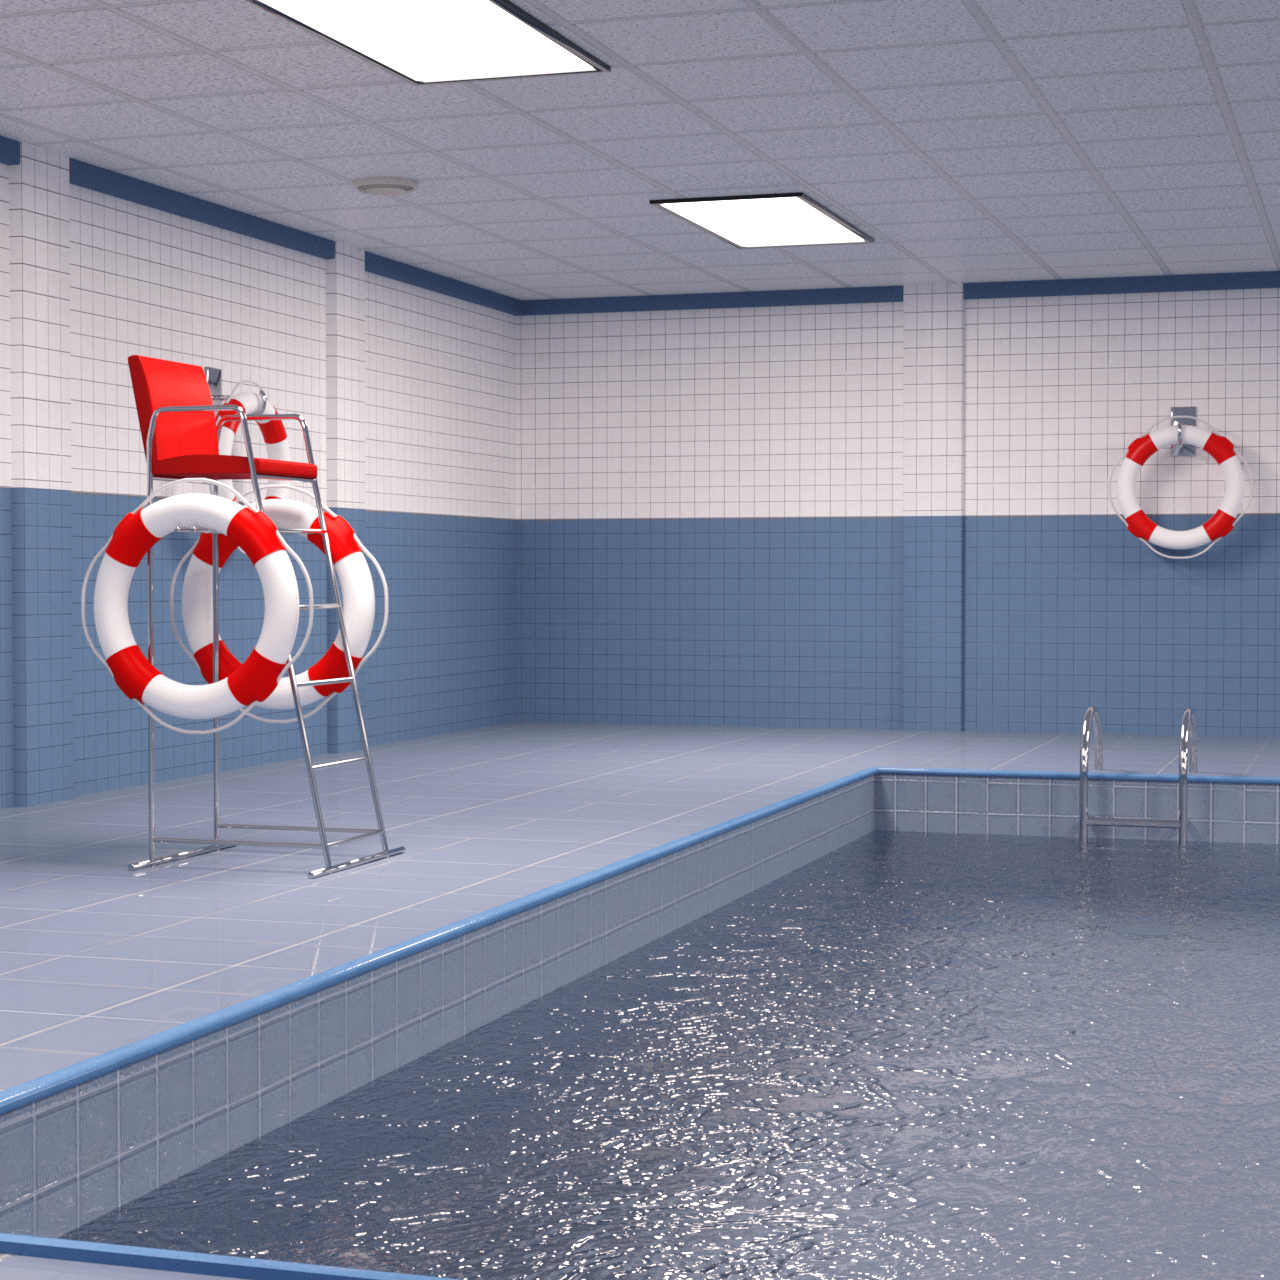 Rendering of an indoor swimming pool 3d model and lifebelt